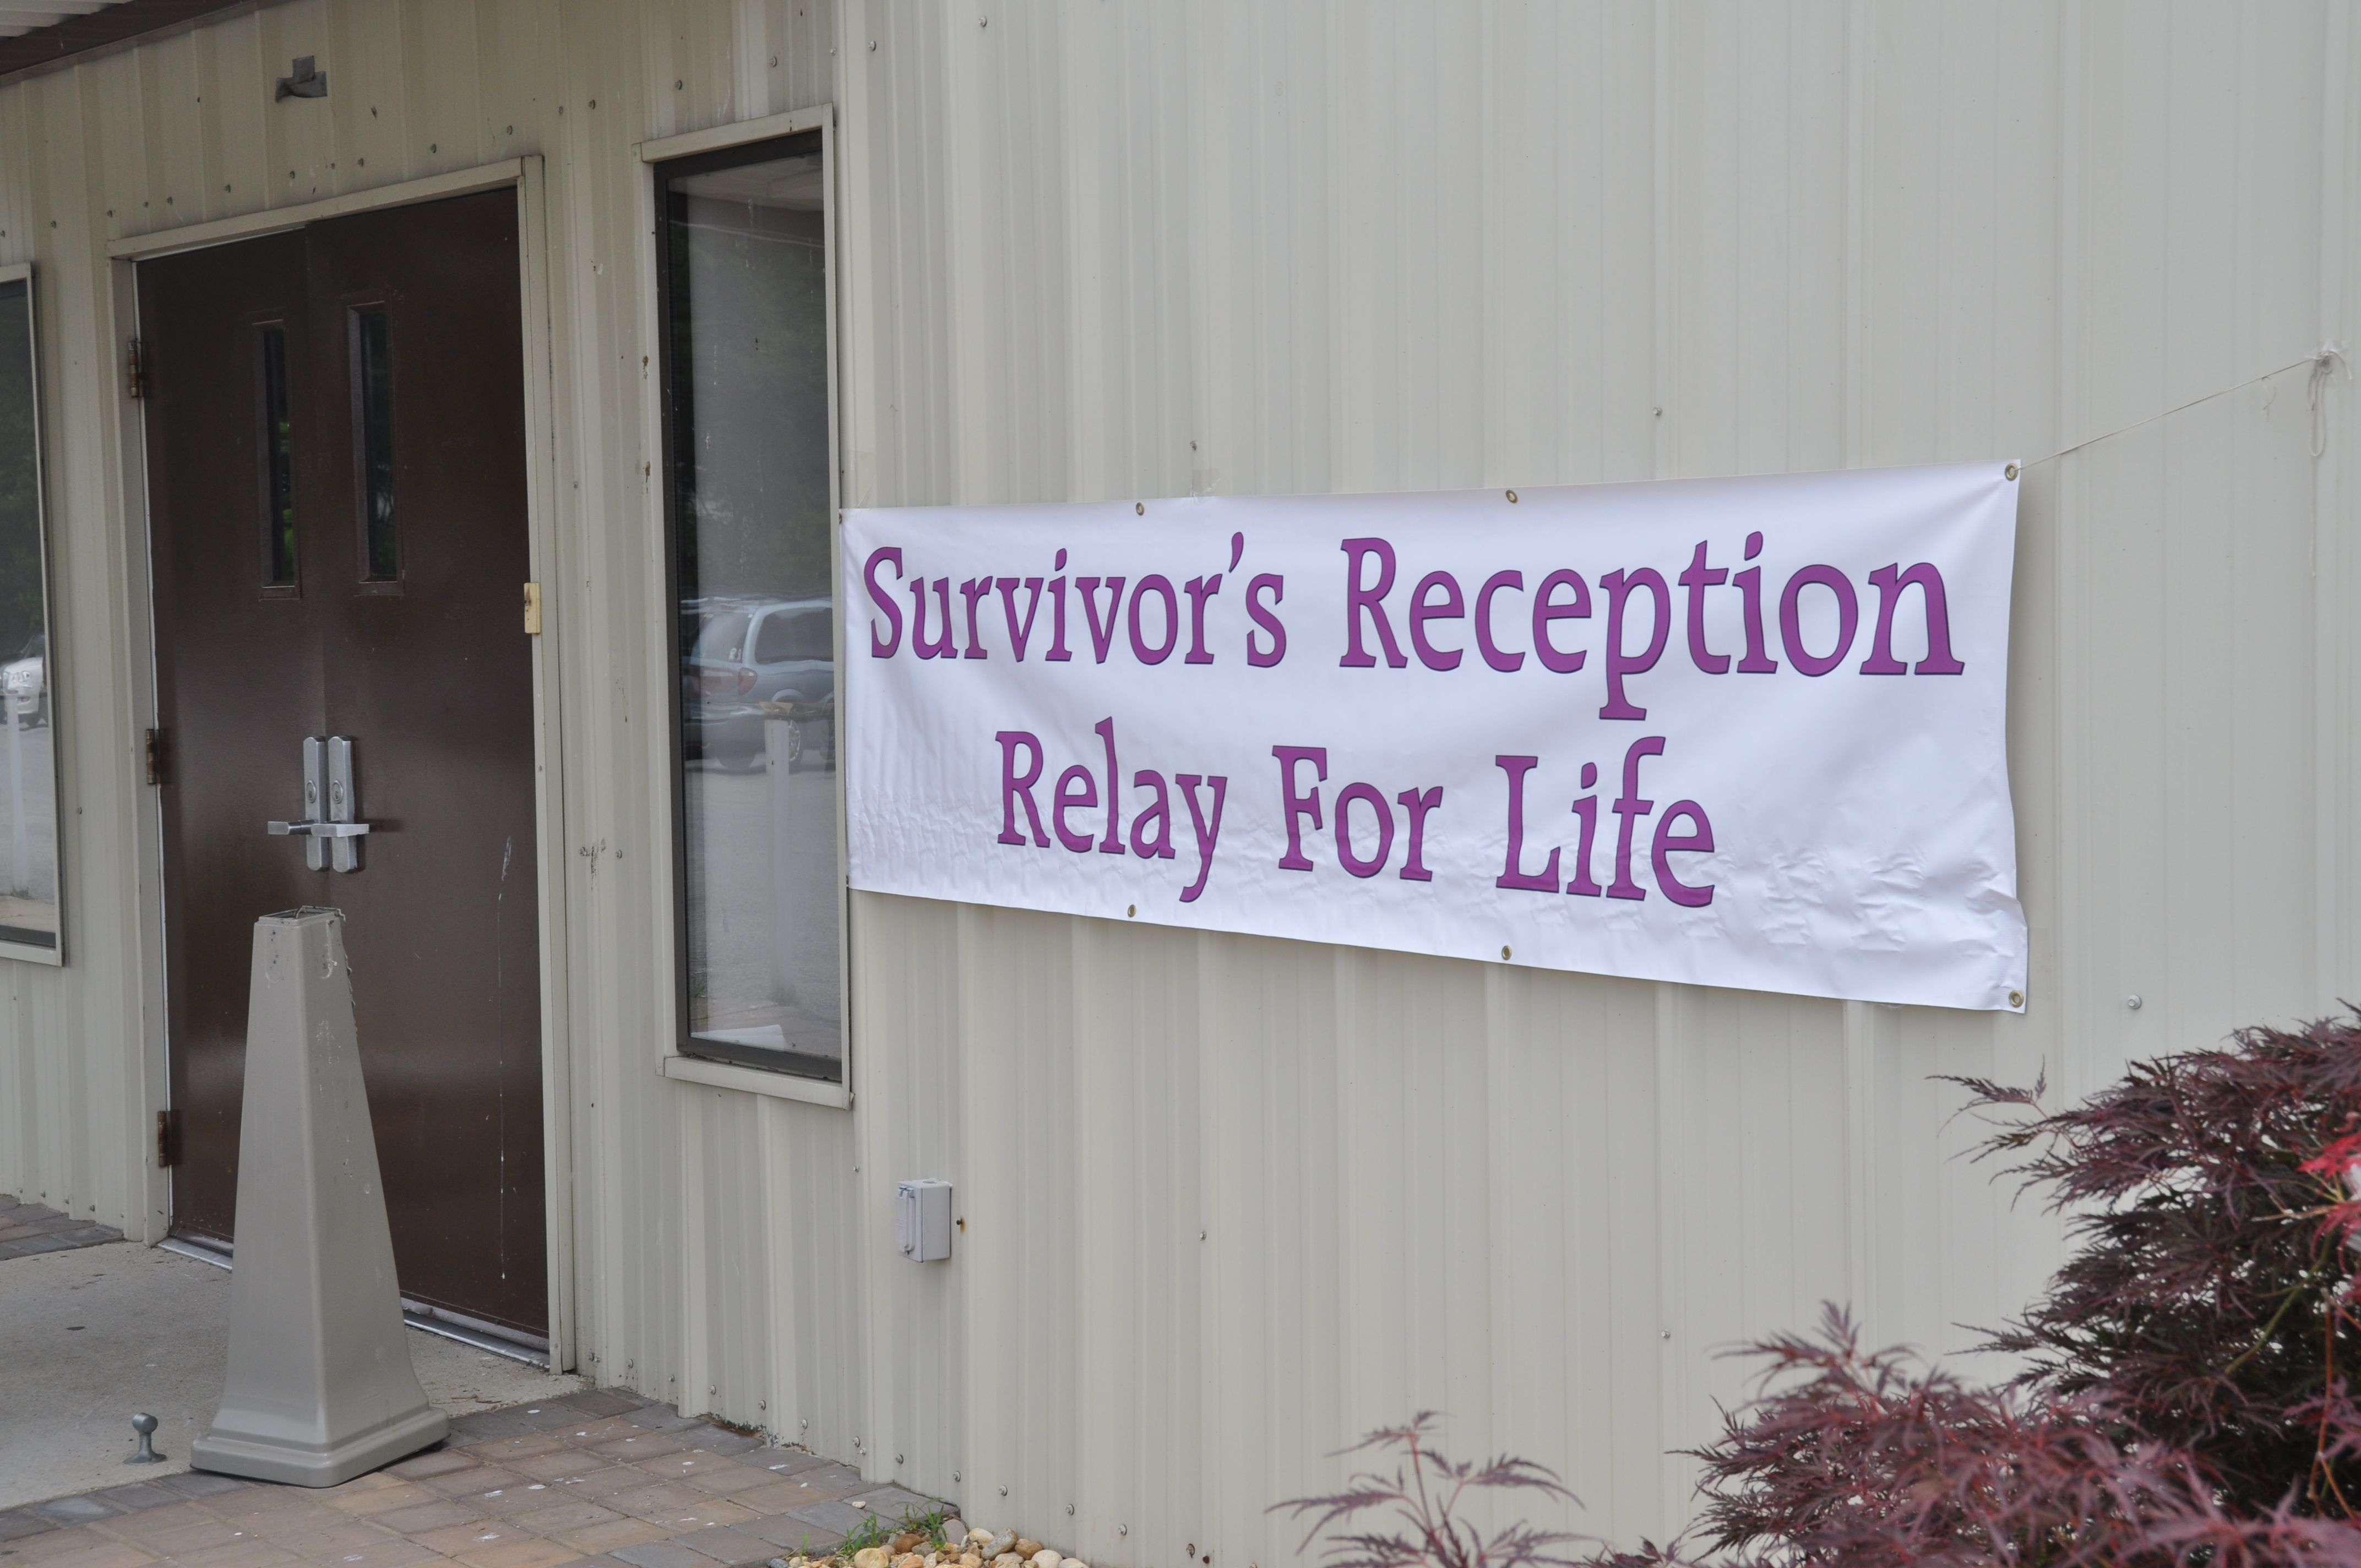 Survivor reception sign